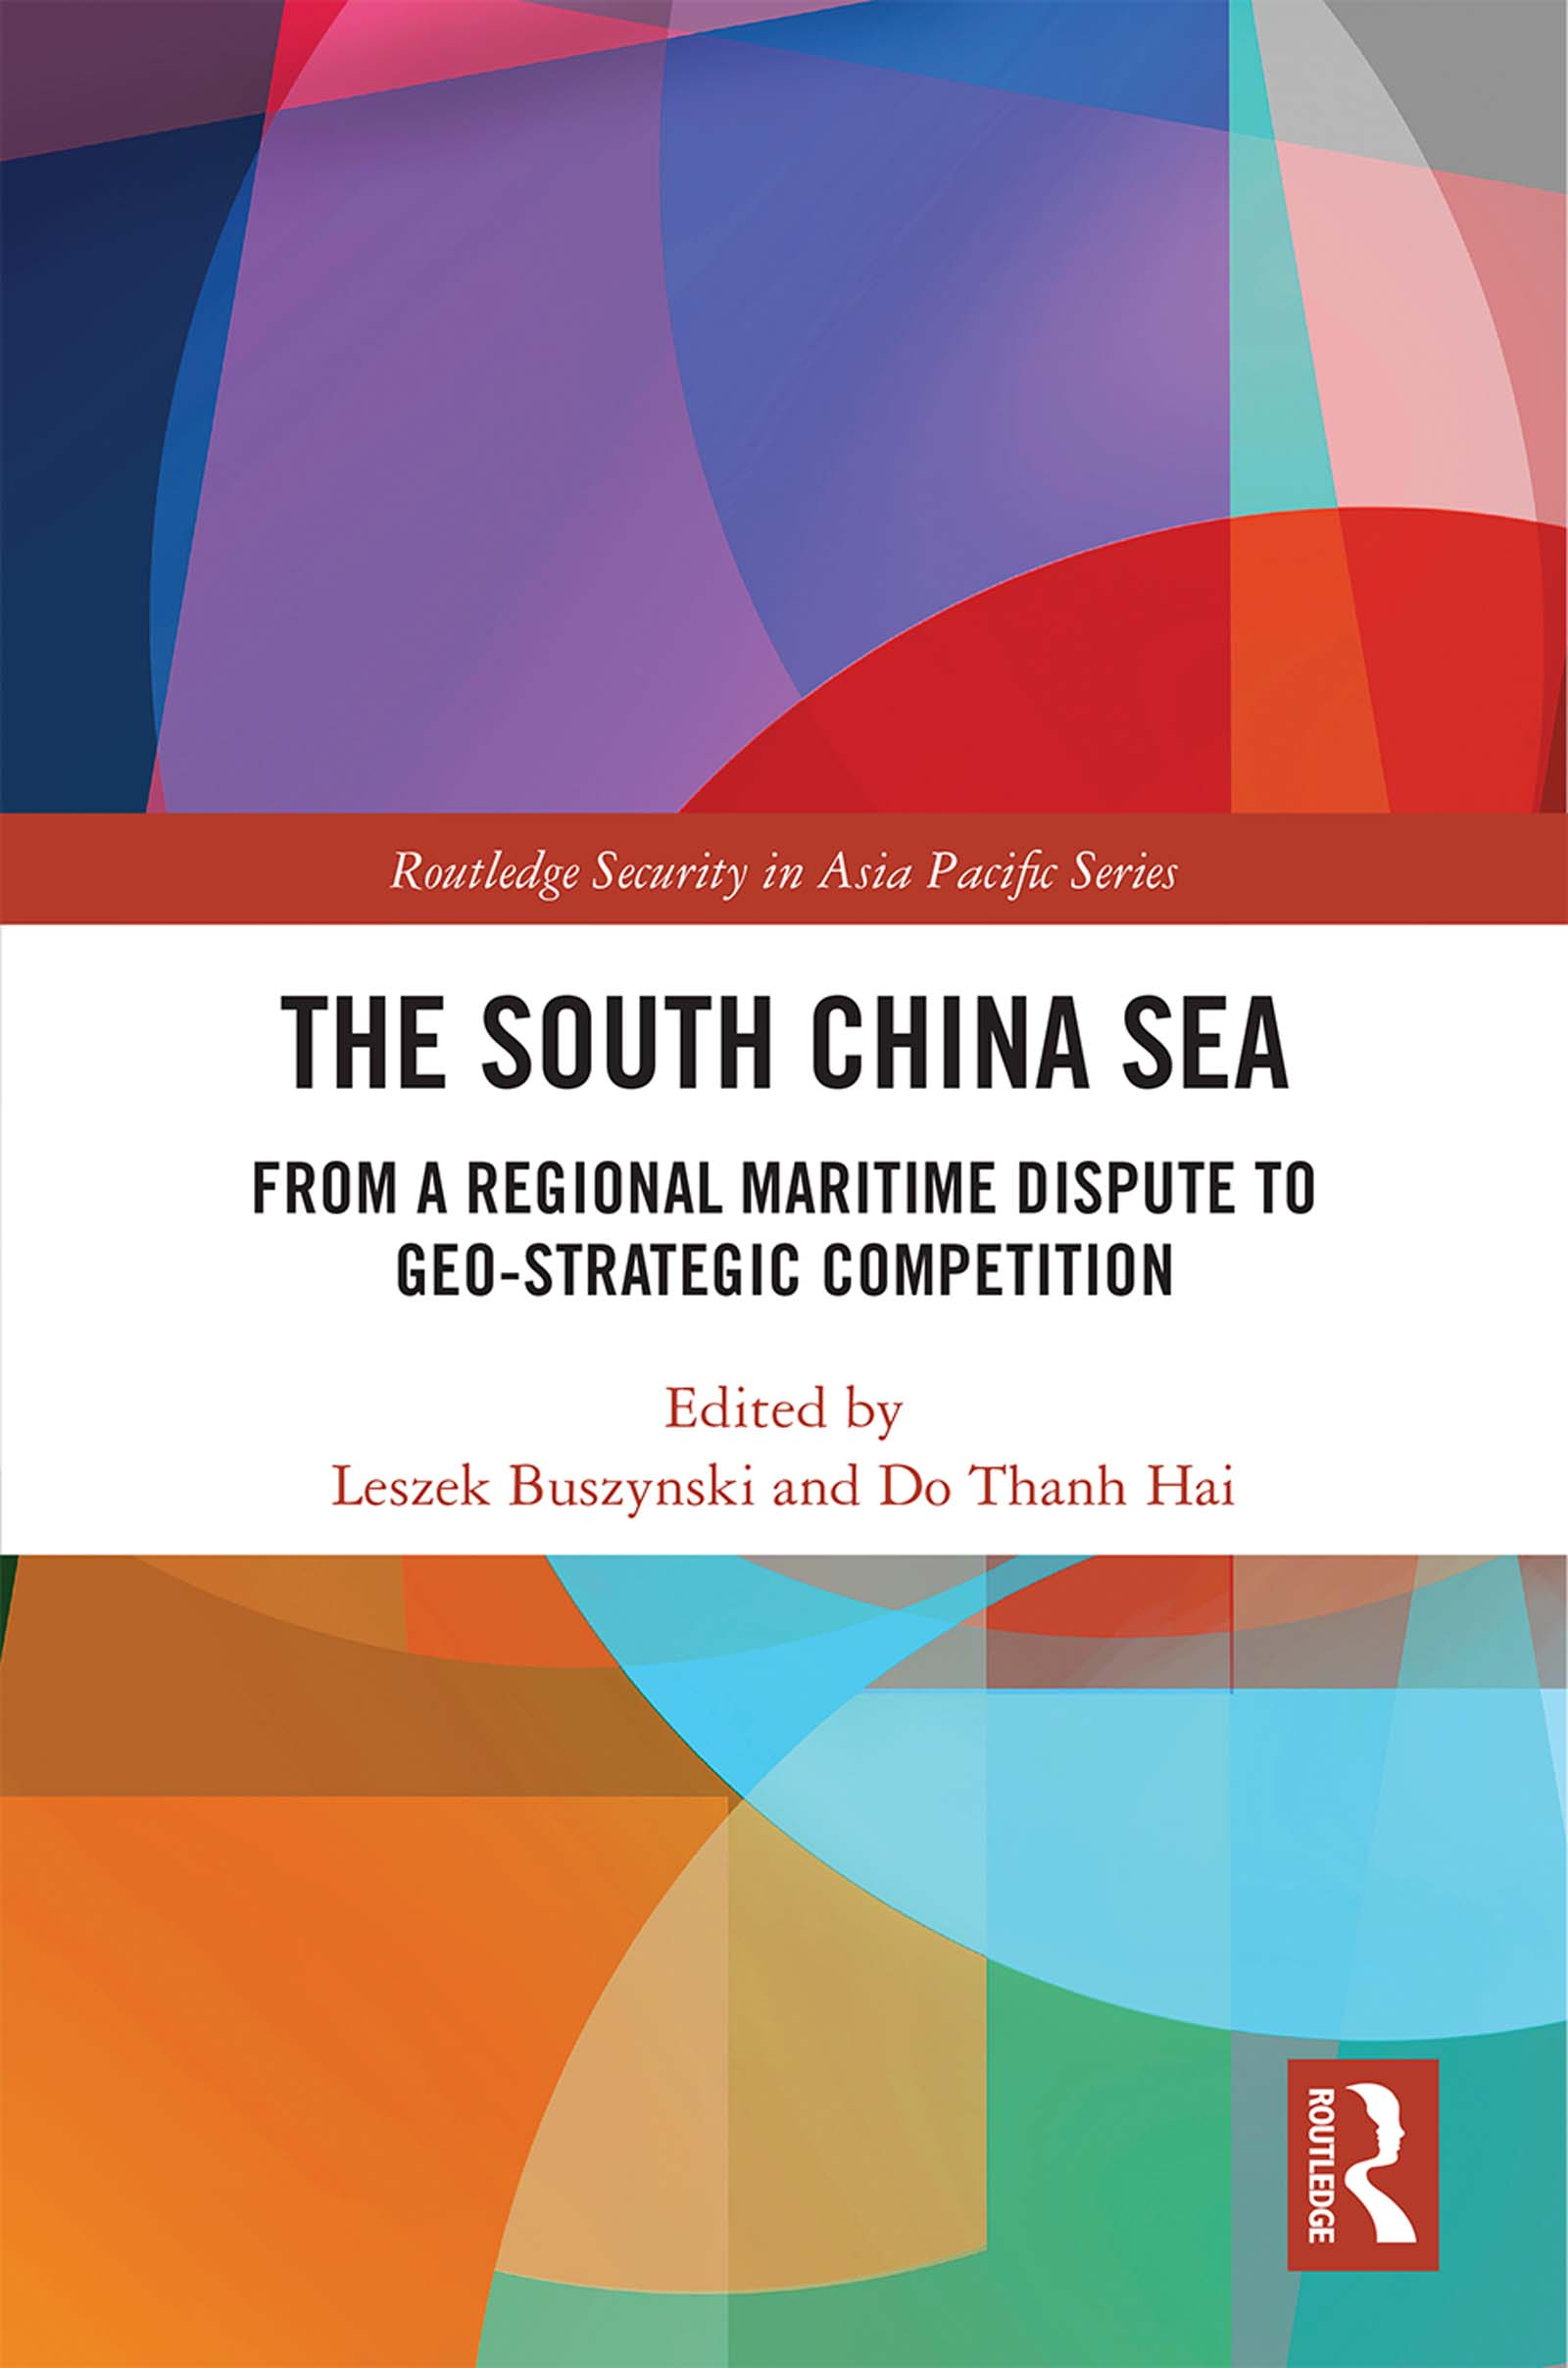 The South China Sea: From a Regional Maritime Dispute to Geo-Strategic Competition book cover